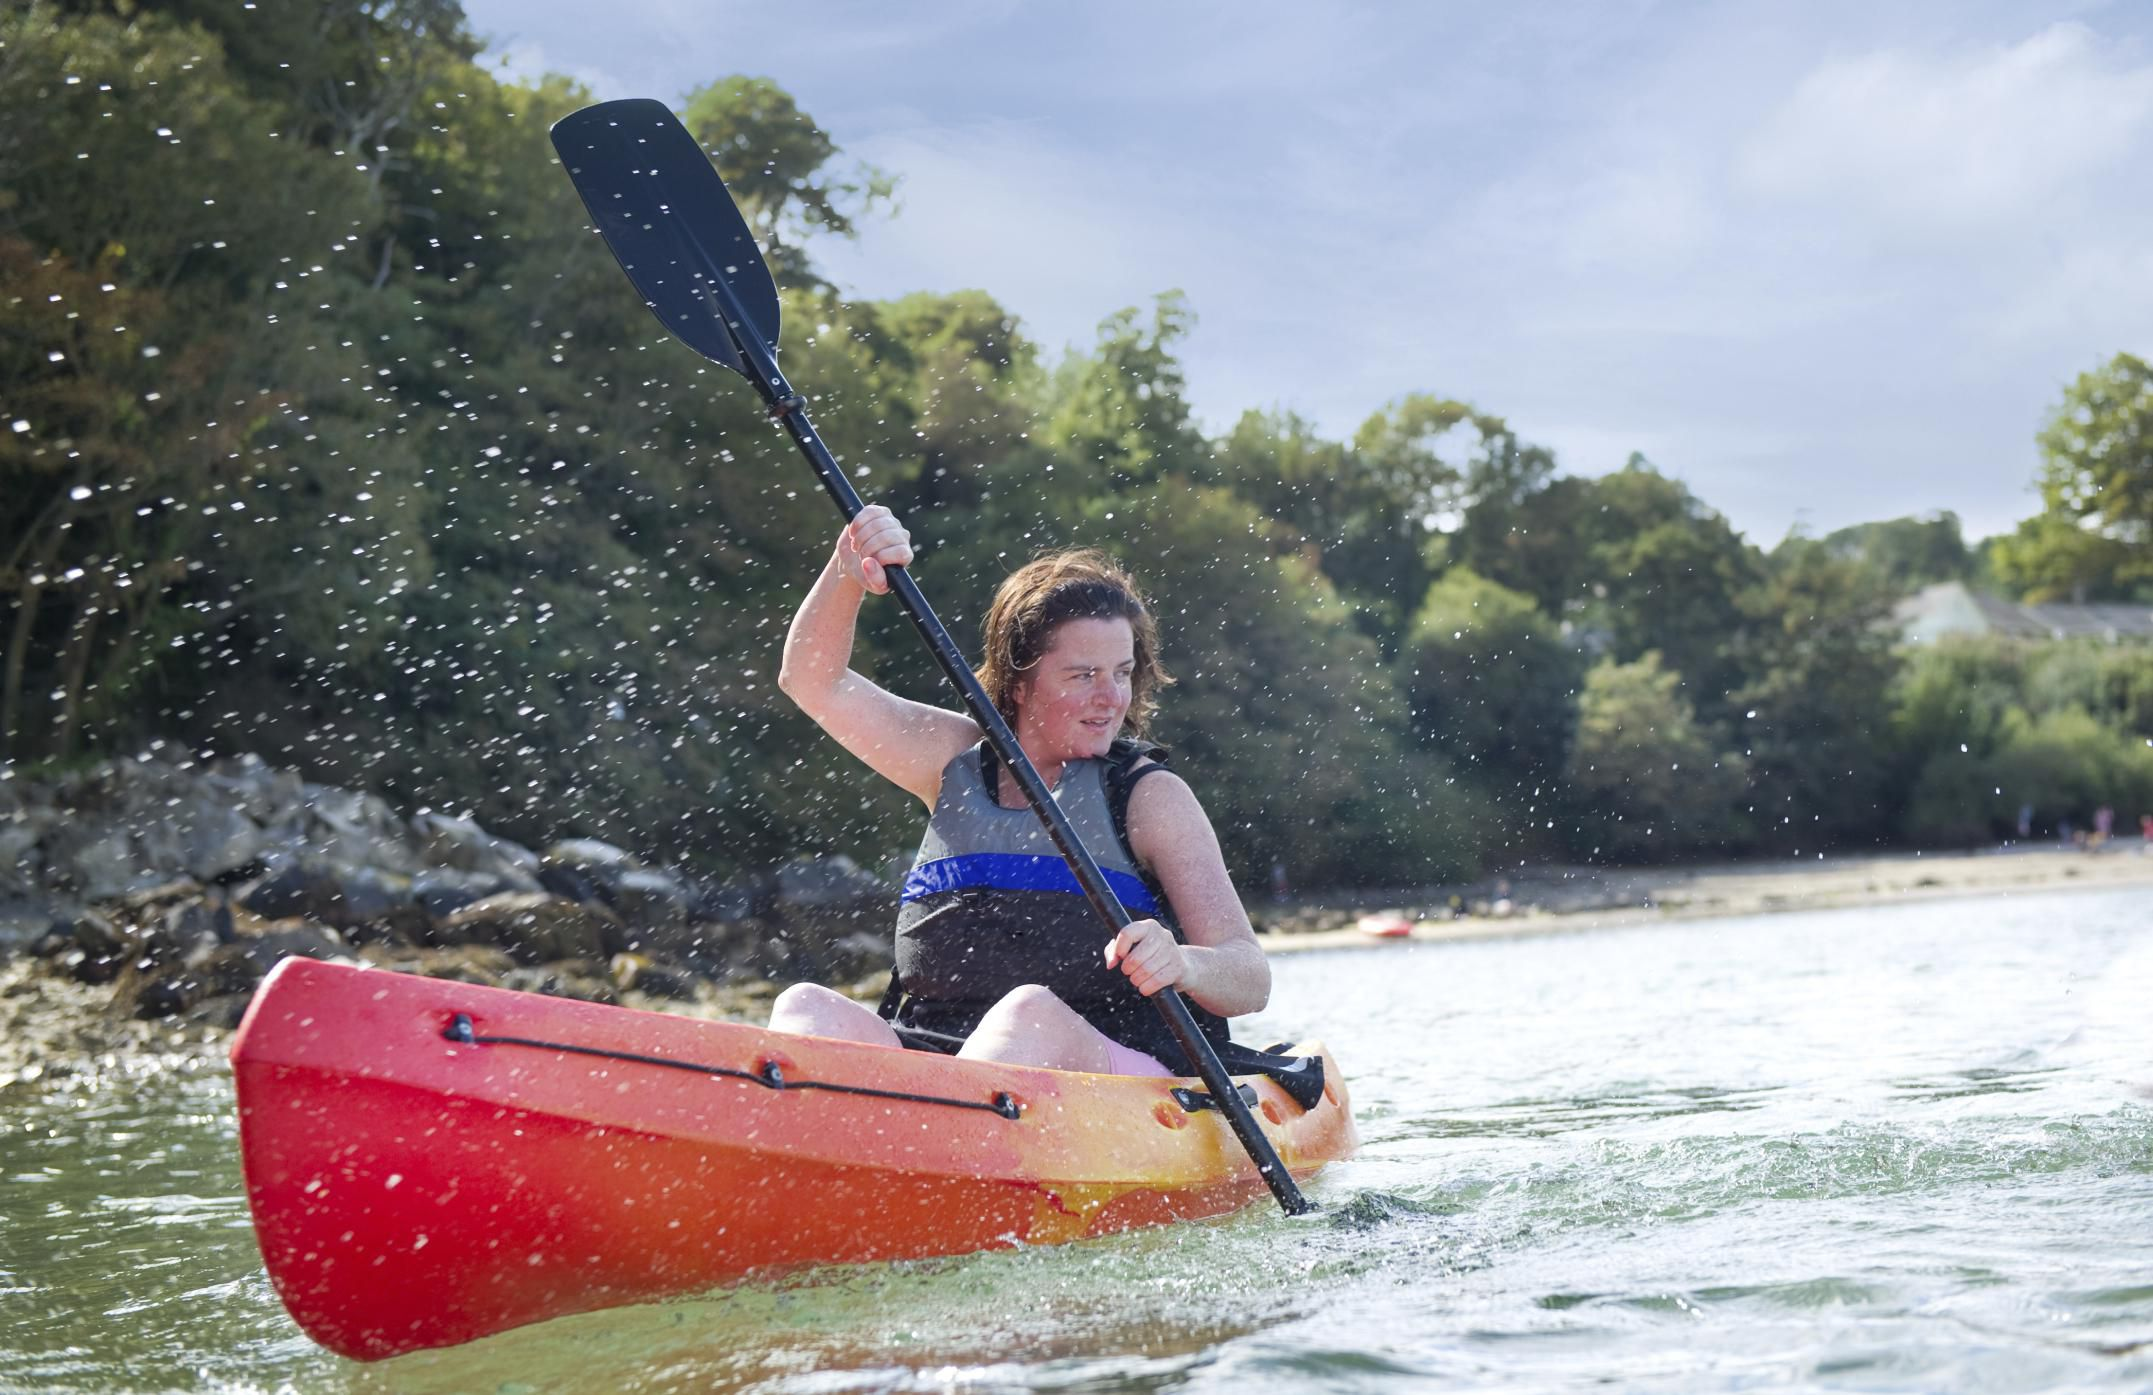 3 Ways to Sea Kayak - wikiHow